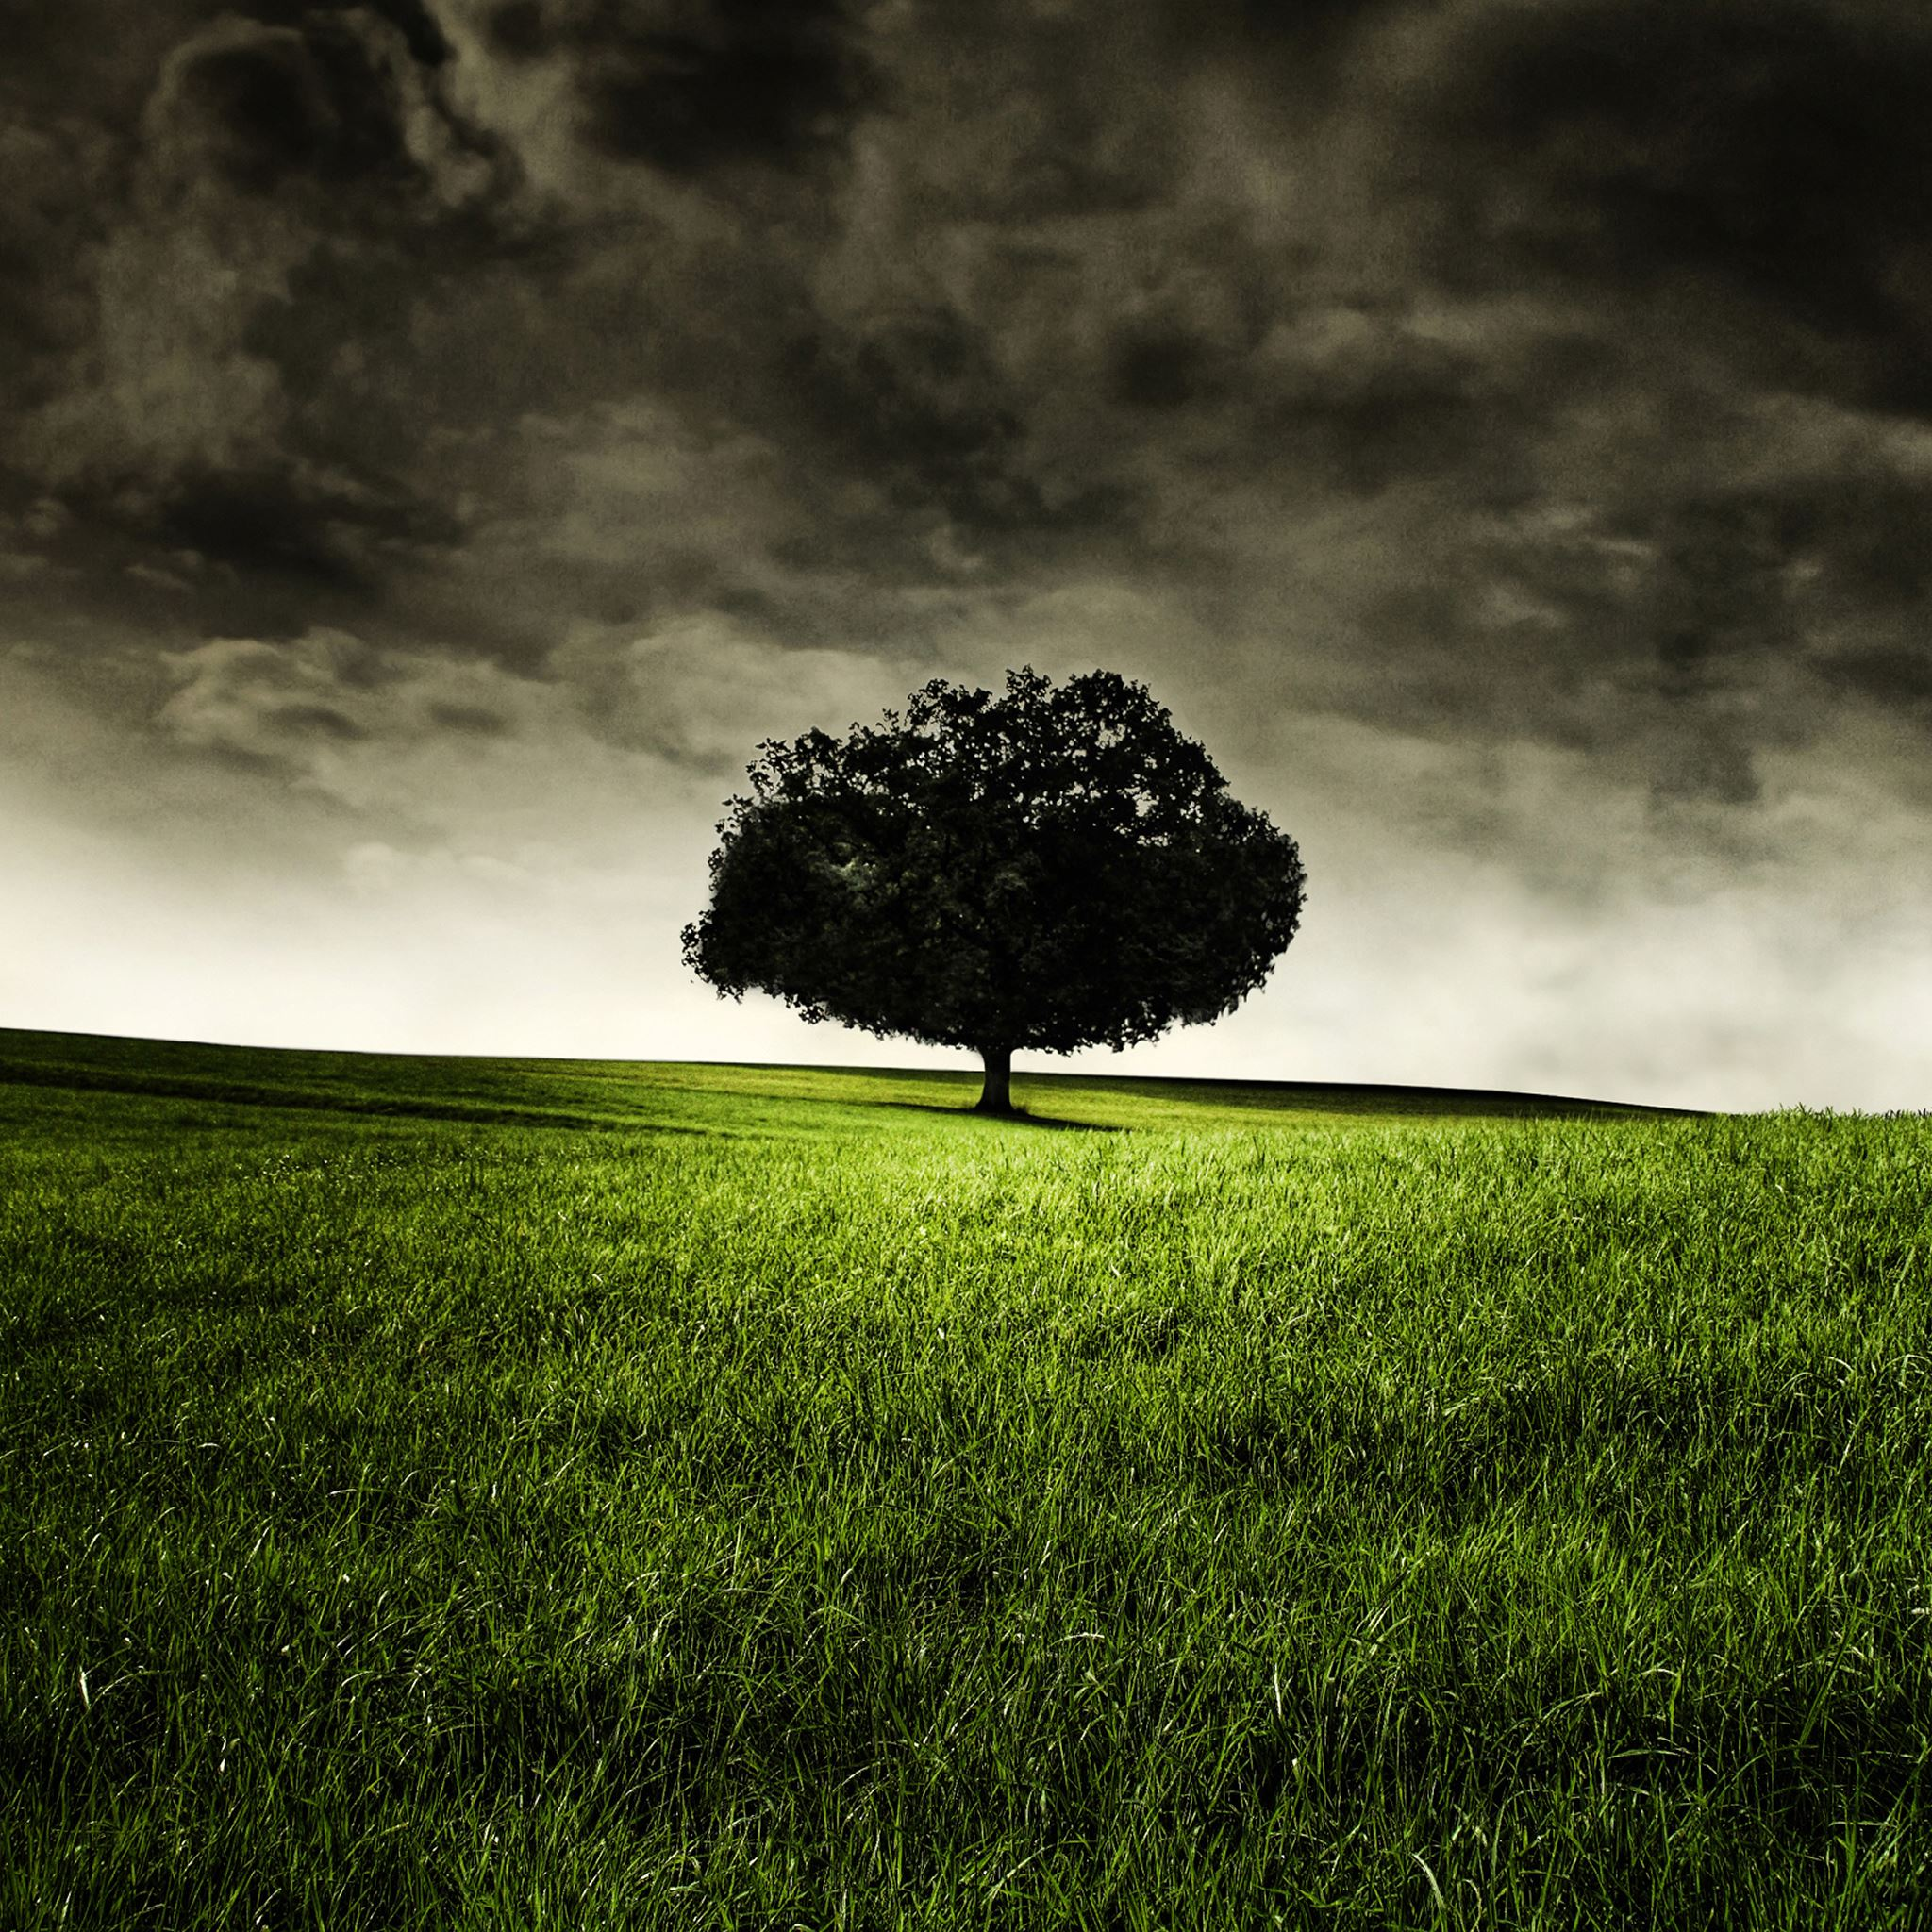 Single Tree on Hill iPad Air wallpaper